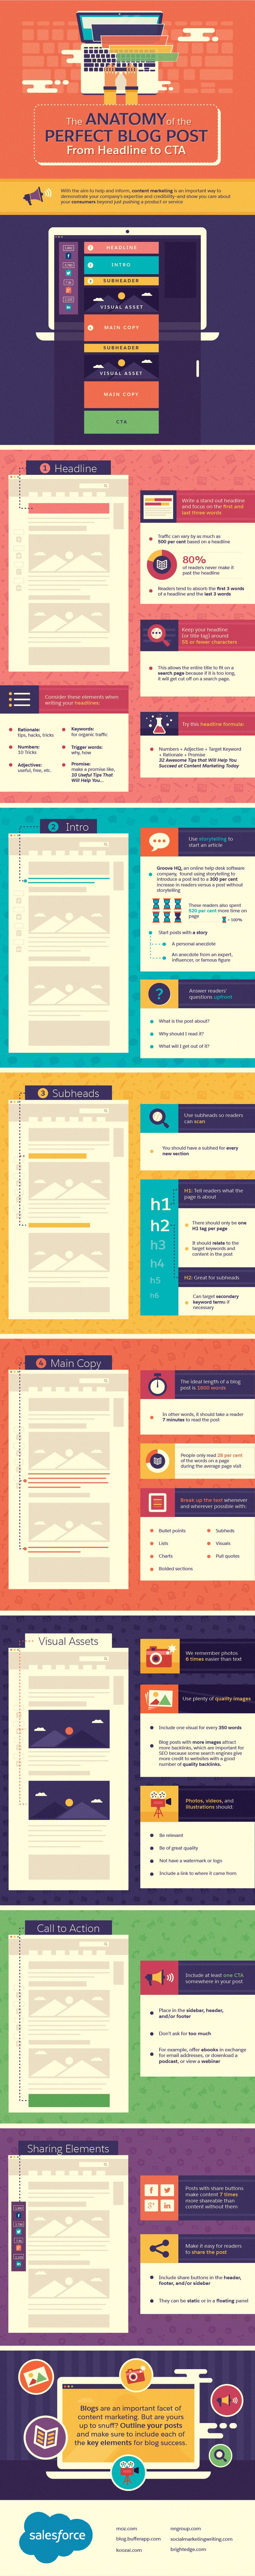 The anatomy of the perfect blog post from Visual assets to social sharing buttons